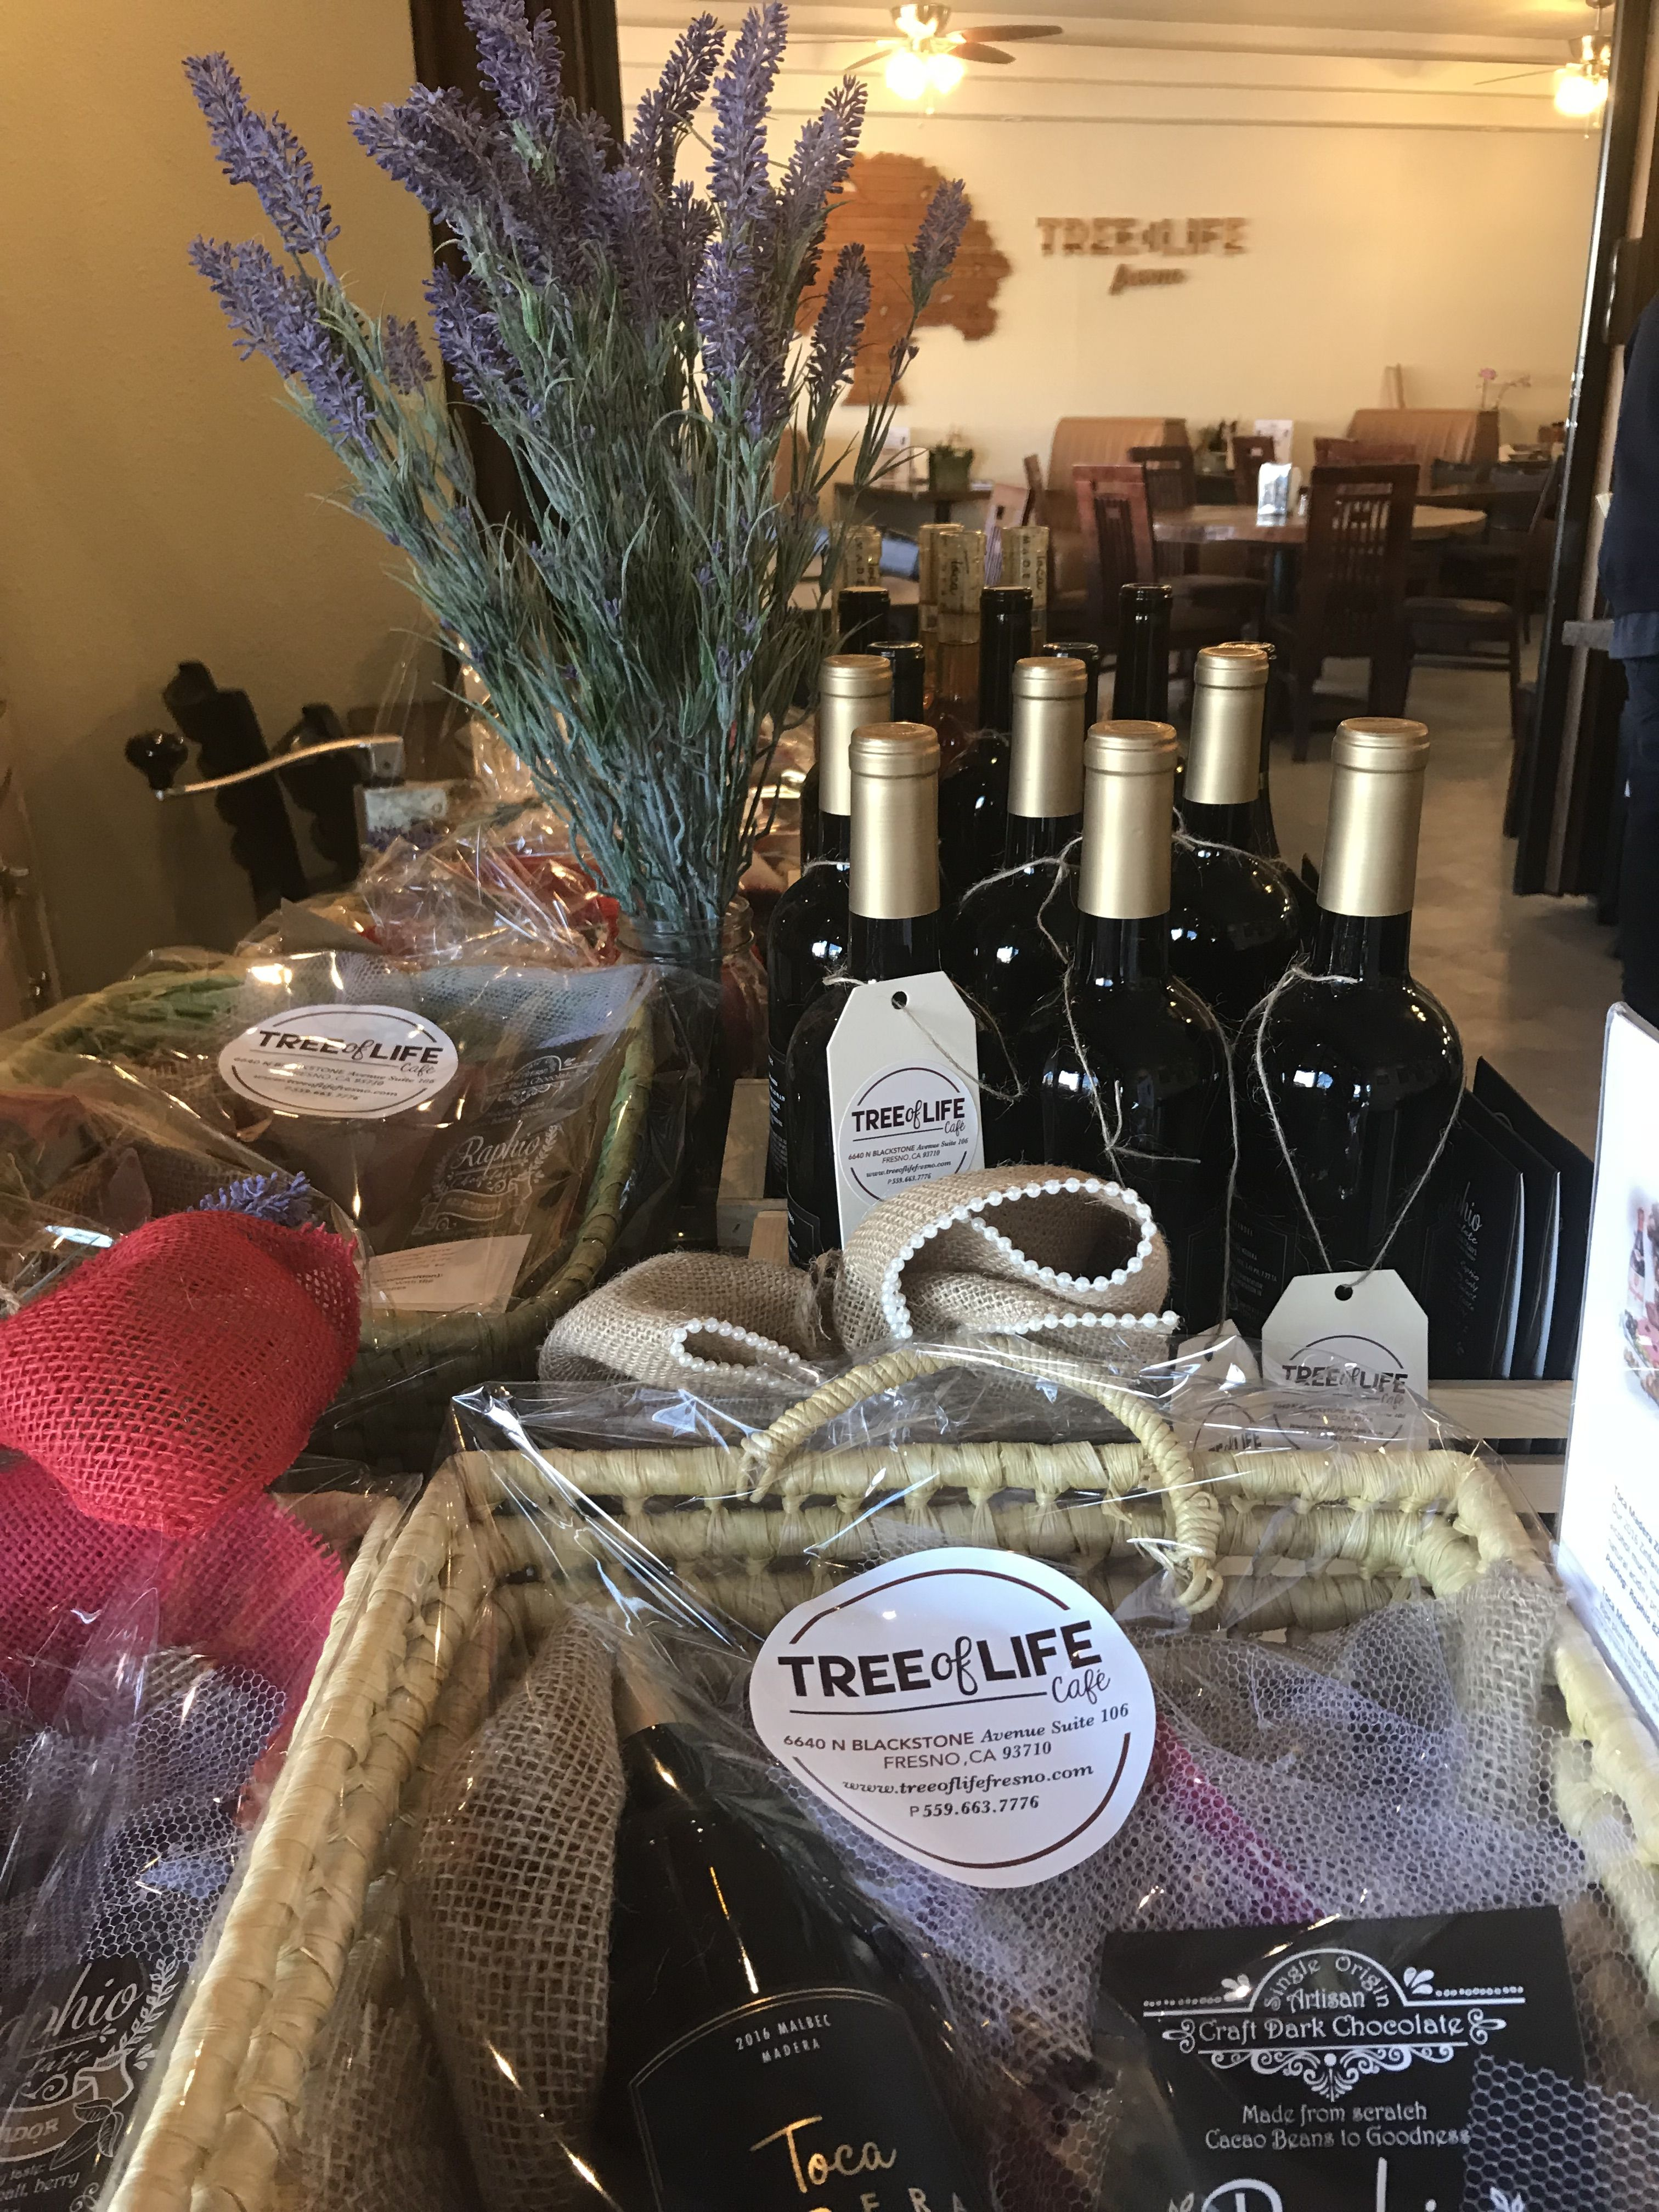 Are you looking for a perfect unique Valentines gift? Tree of Life Café has Wine